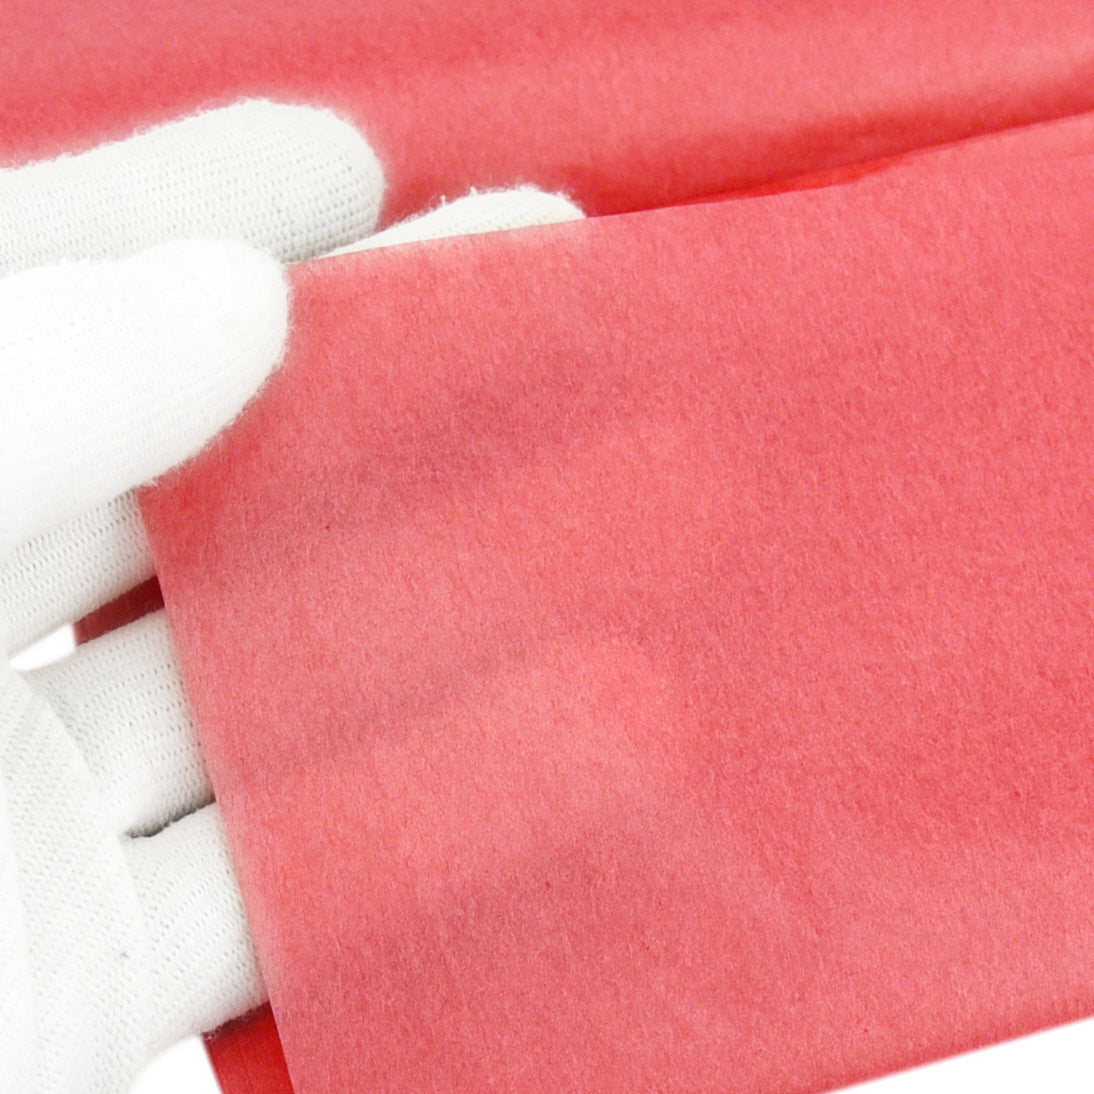 50 Sheets Red Wrapping Tissue Paper